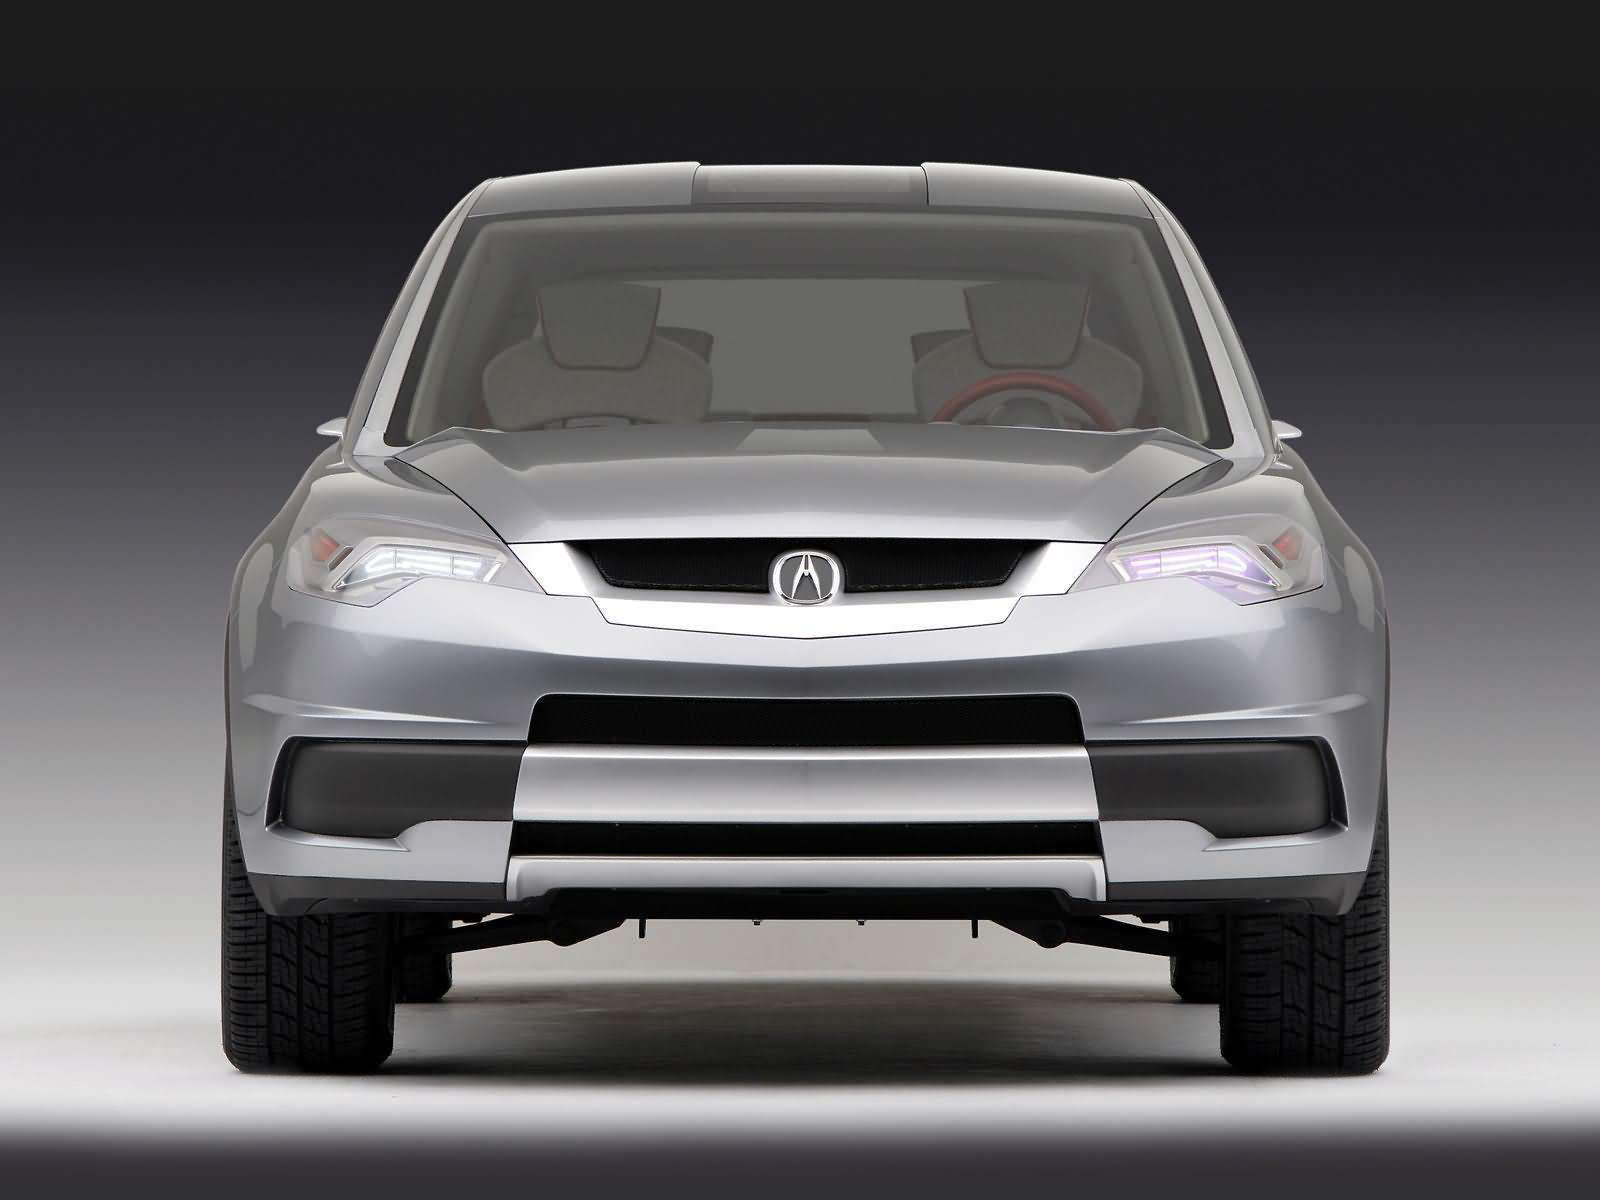 2005 Acura RDX Concept photo - 5